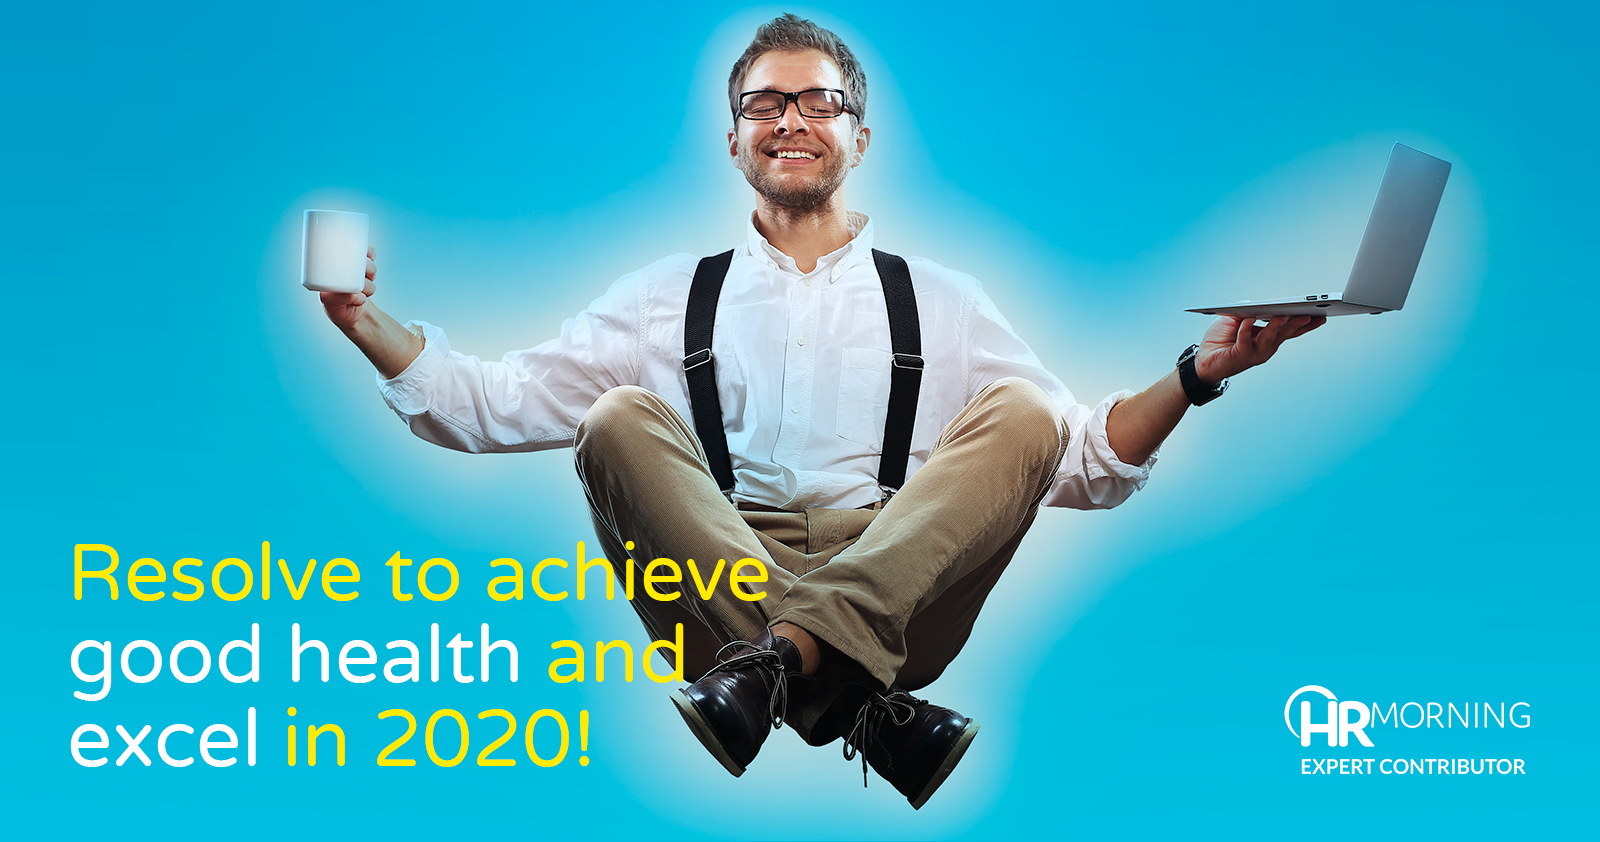 resolve to achieve good health and excel in 2020